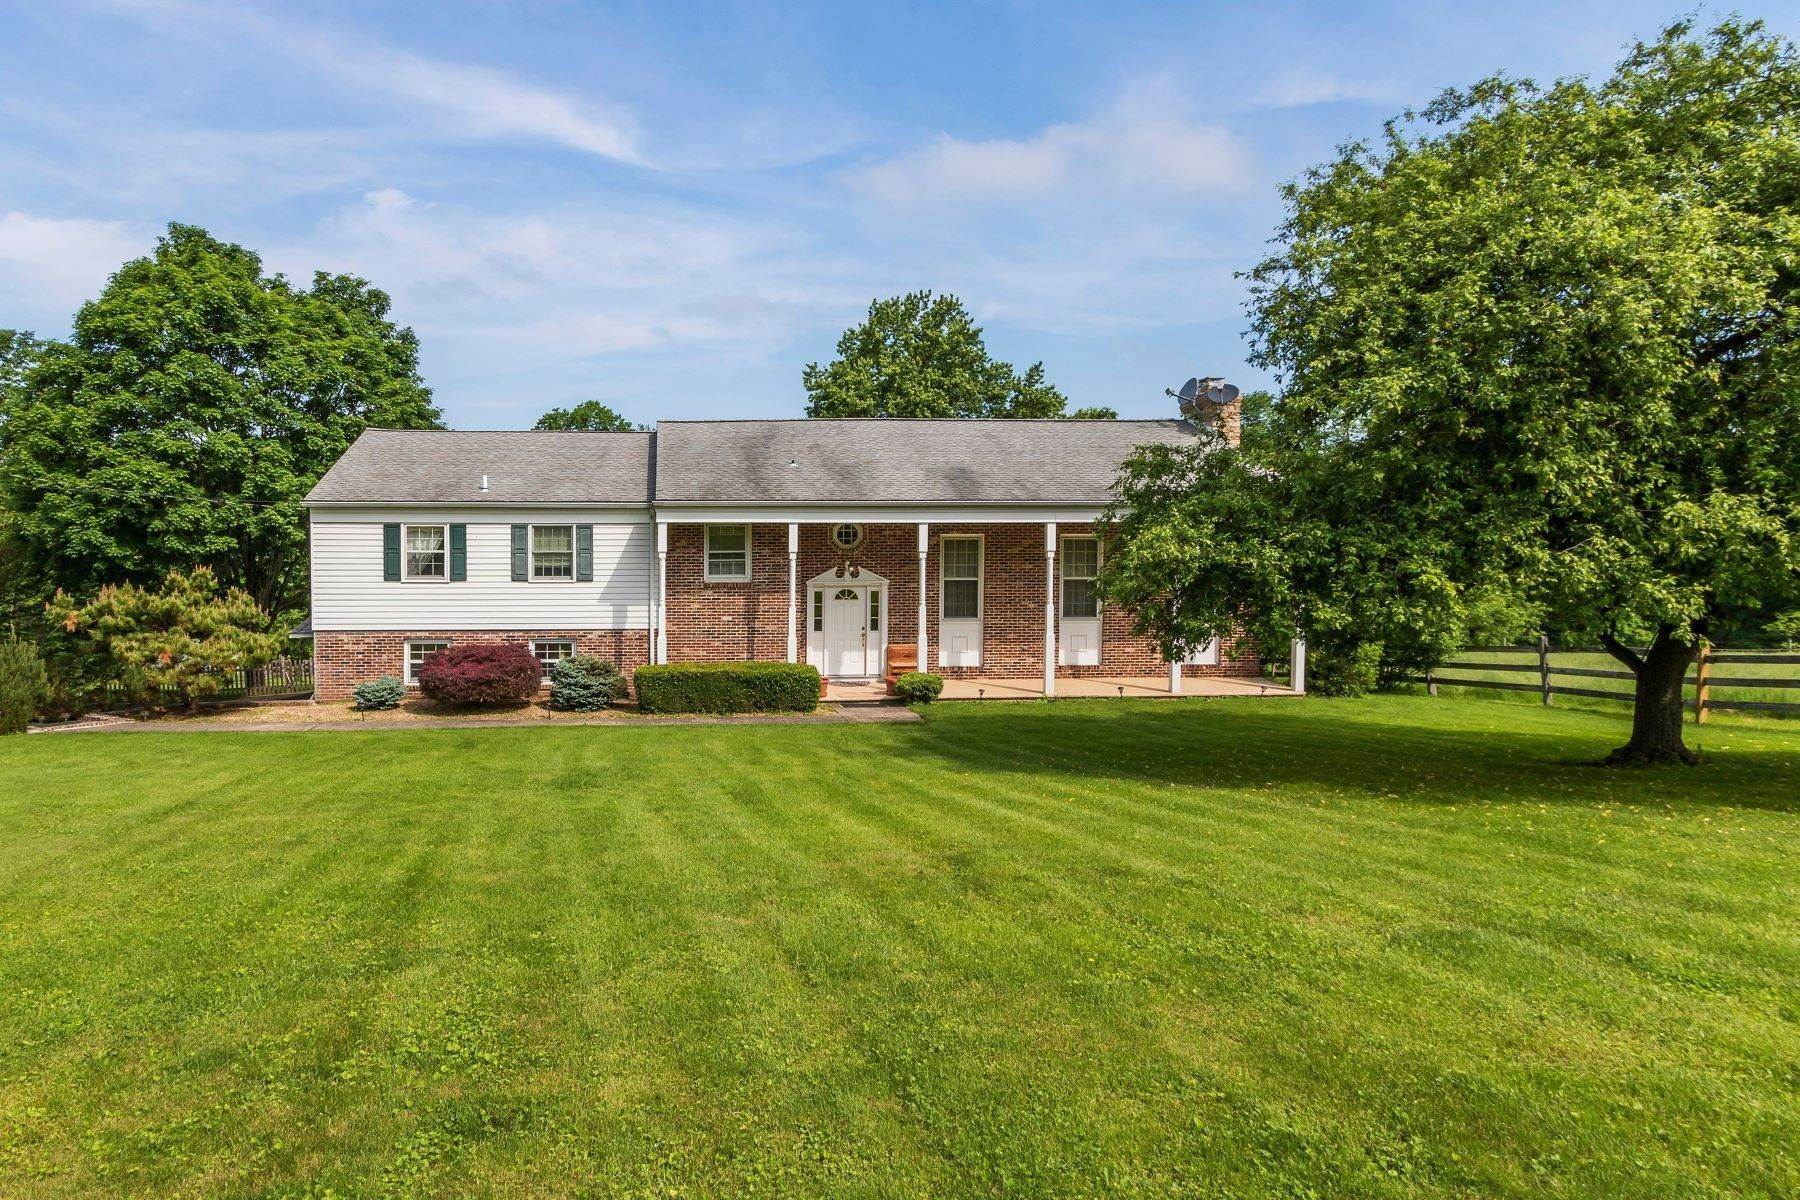 Single Family Homes for Sale at Beautiful Home on 4 acres in Tinicum Township 424 Headquarters Rd Erwinna, Pennsylvania 18920 United States